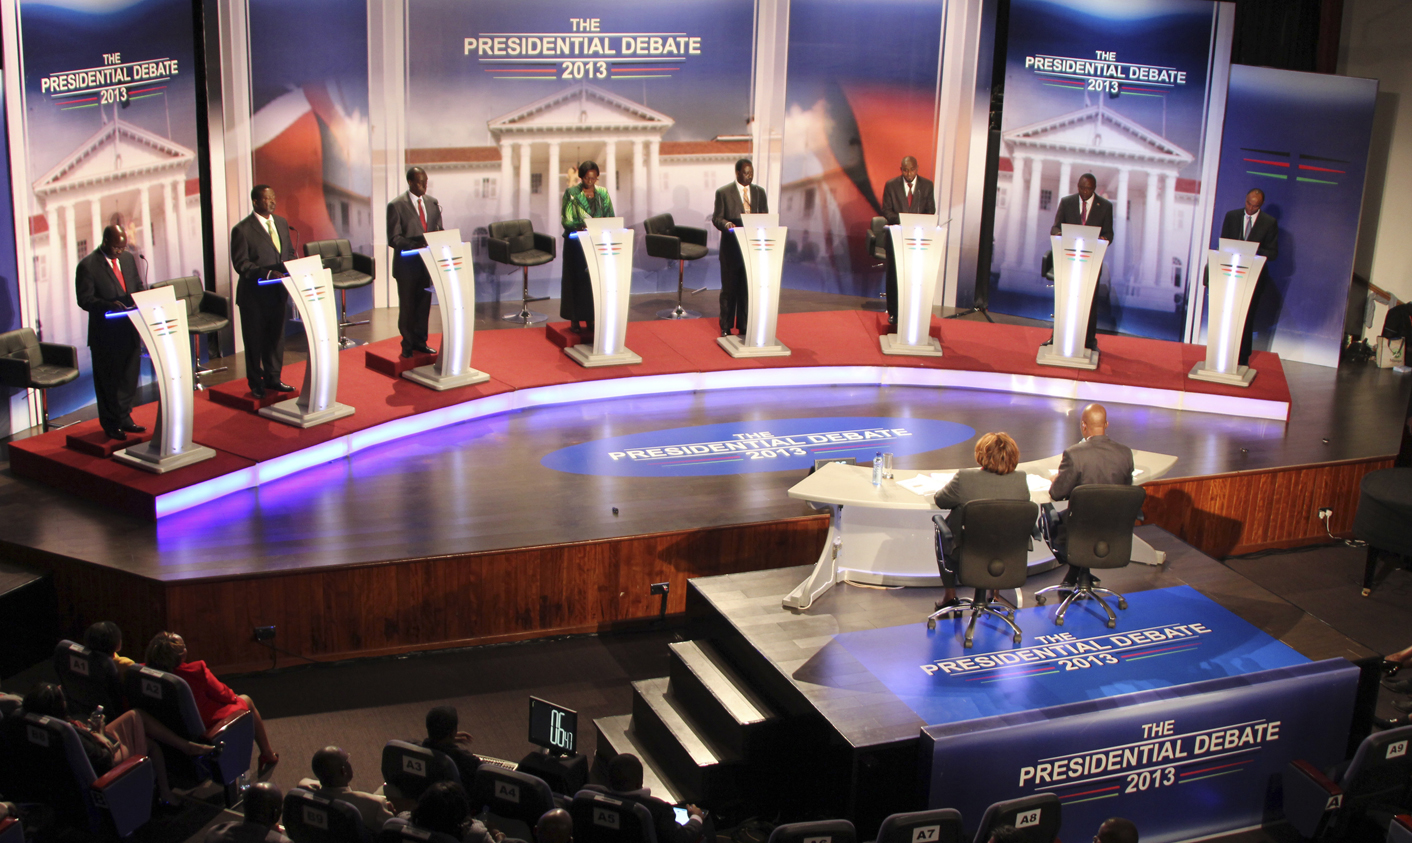 Are our kind of presidential debates really necessary?